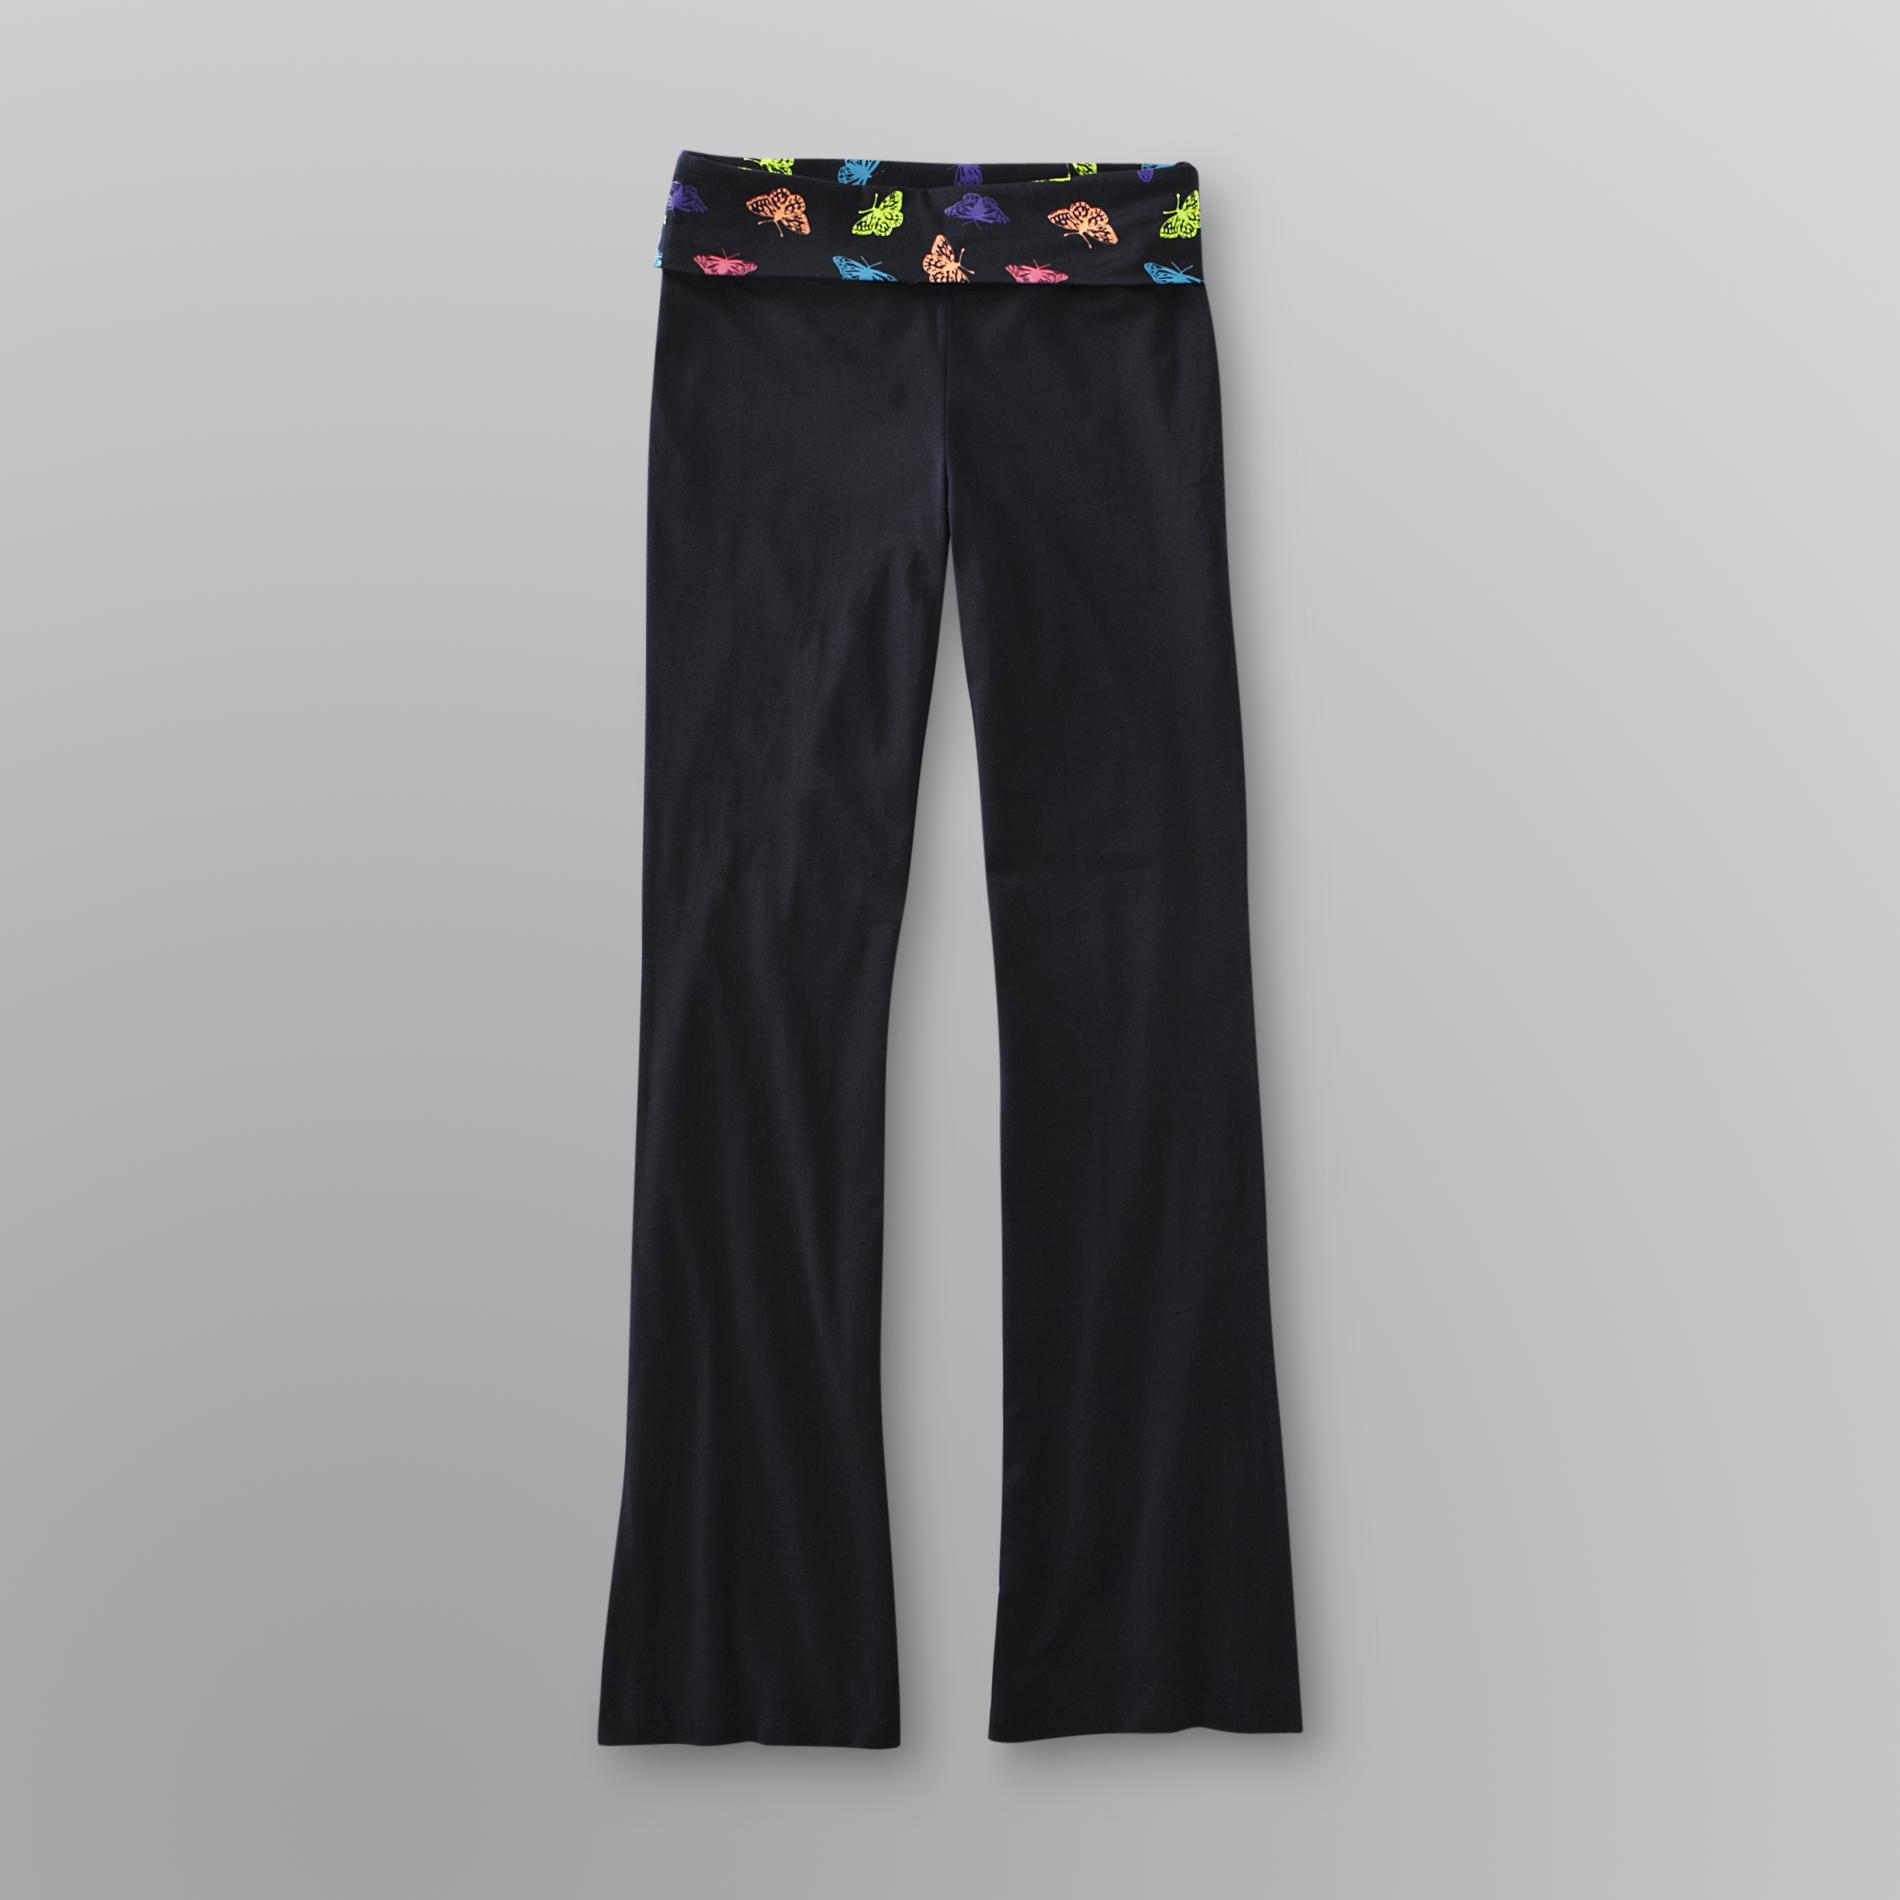 Joe Boxer Women's Yoga Pants - Butterflies at Sears.com